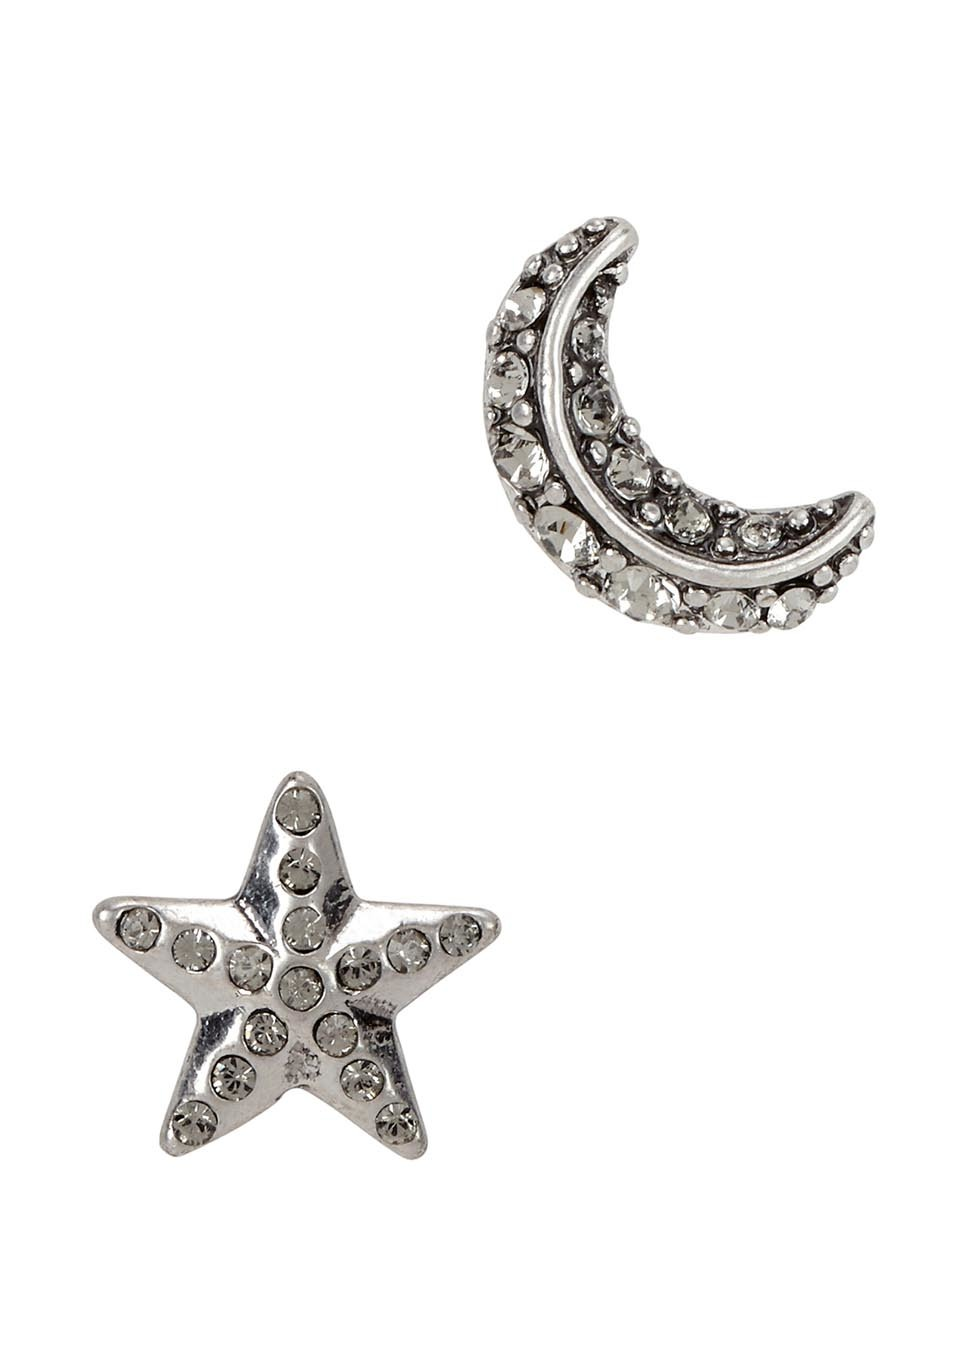 Star And Moon Silver Tone Earrings - predominant colour: silver; occasions: evening; style: stud; length: short; size: small/fine; material: chain/metal; fastening: pierced; finish: metallic; embellishment: crystals/glass; season: a/w 2016; wardrobe: event